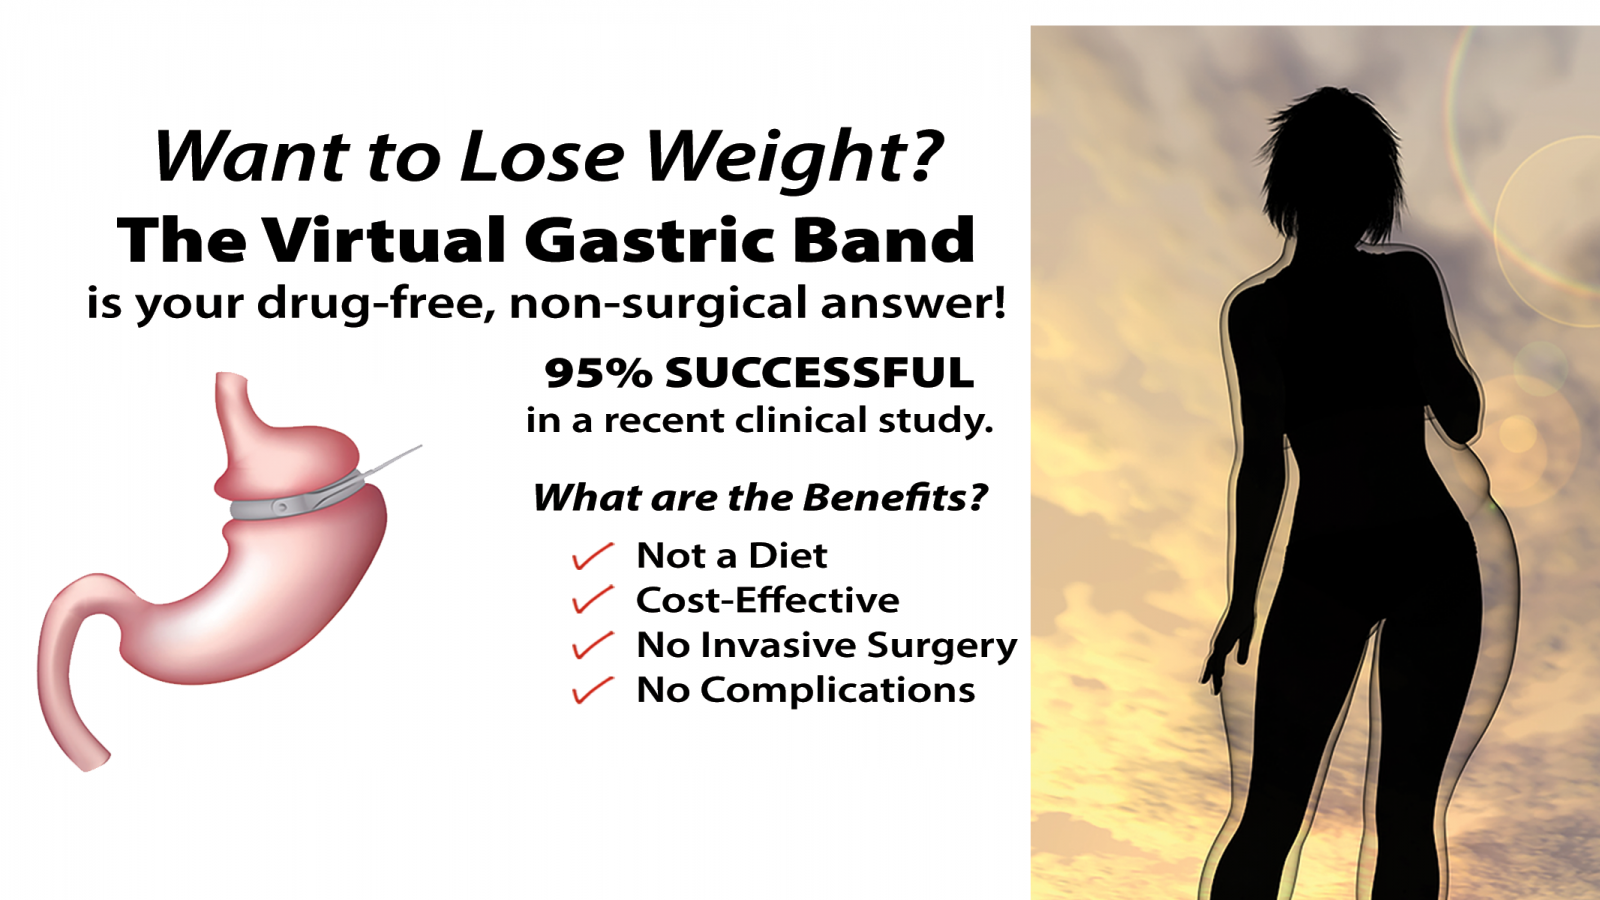 Lose Weight with Virtual Gastric Band